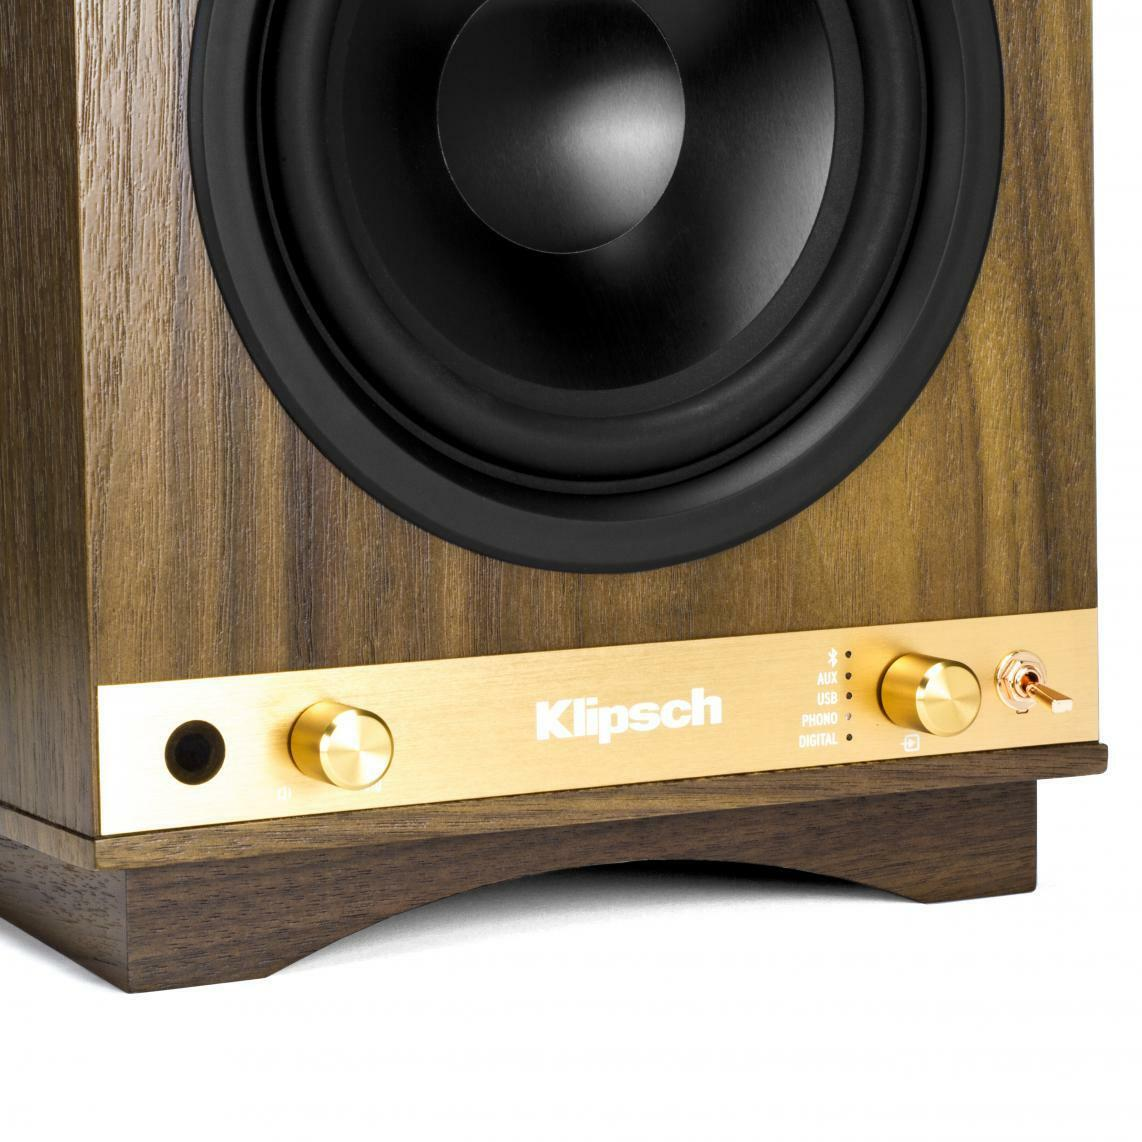 blk speakers rp fitzroy klipsch monitor premier products bookshelf reference vinyl revival